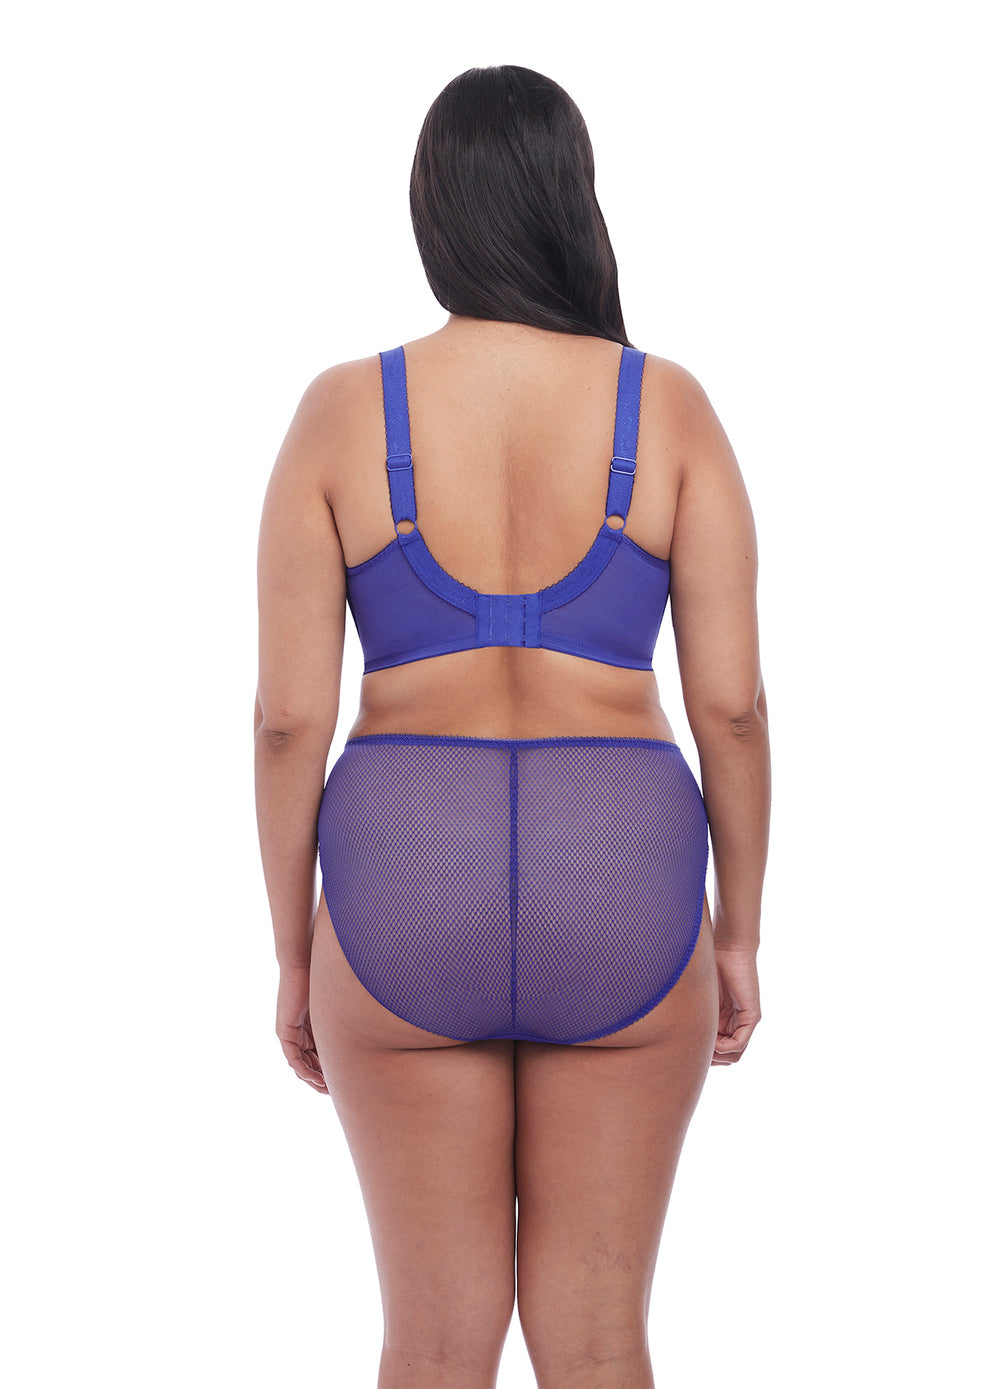 EL4383ULE Charley UW Bandless Spacer Moulded Bra |ULTRAMARINE|